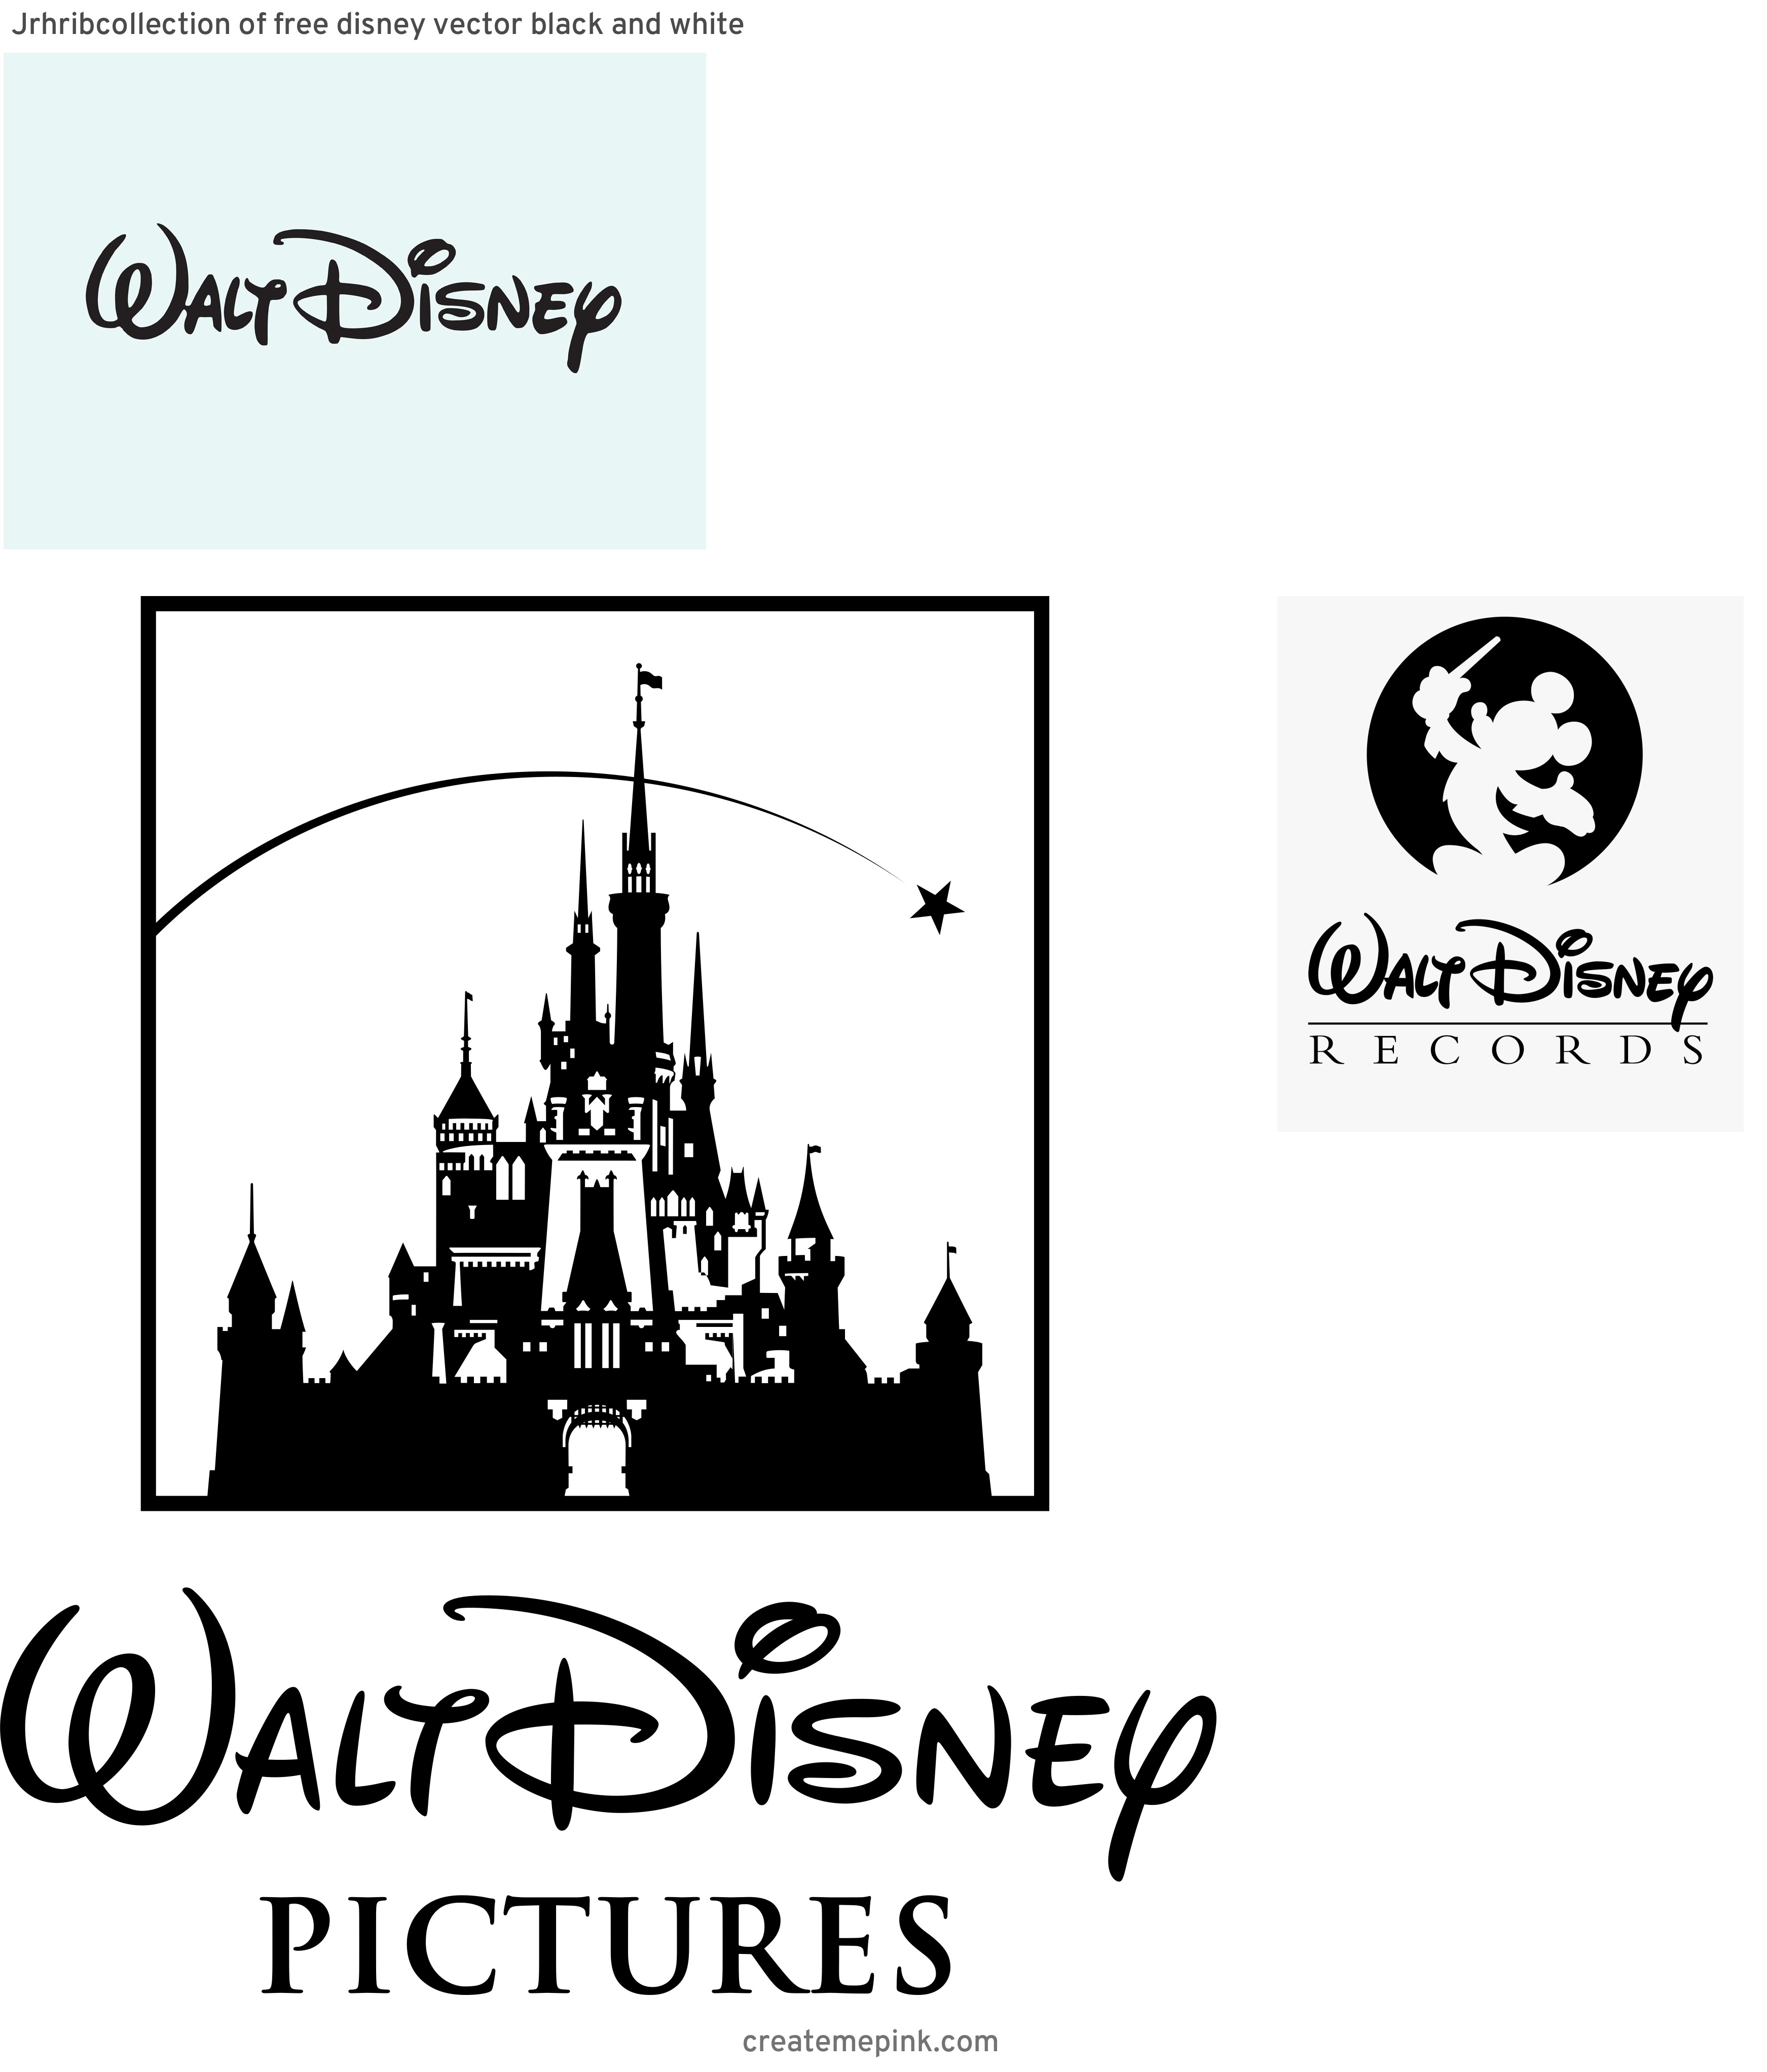 Walt Disney Vector: Jrhribcollection Of Free Disney Vector Black And White